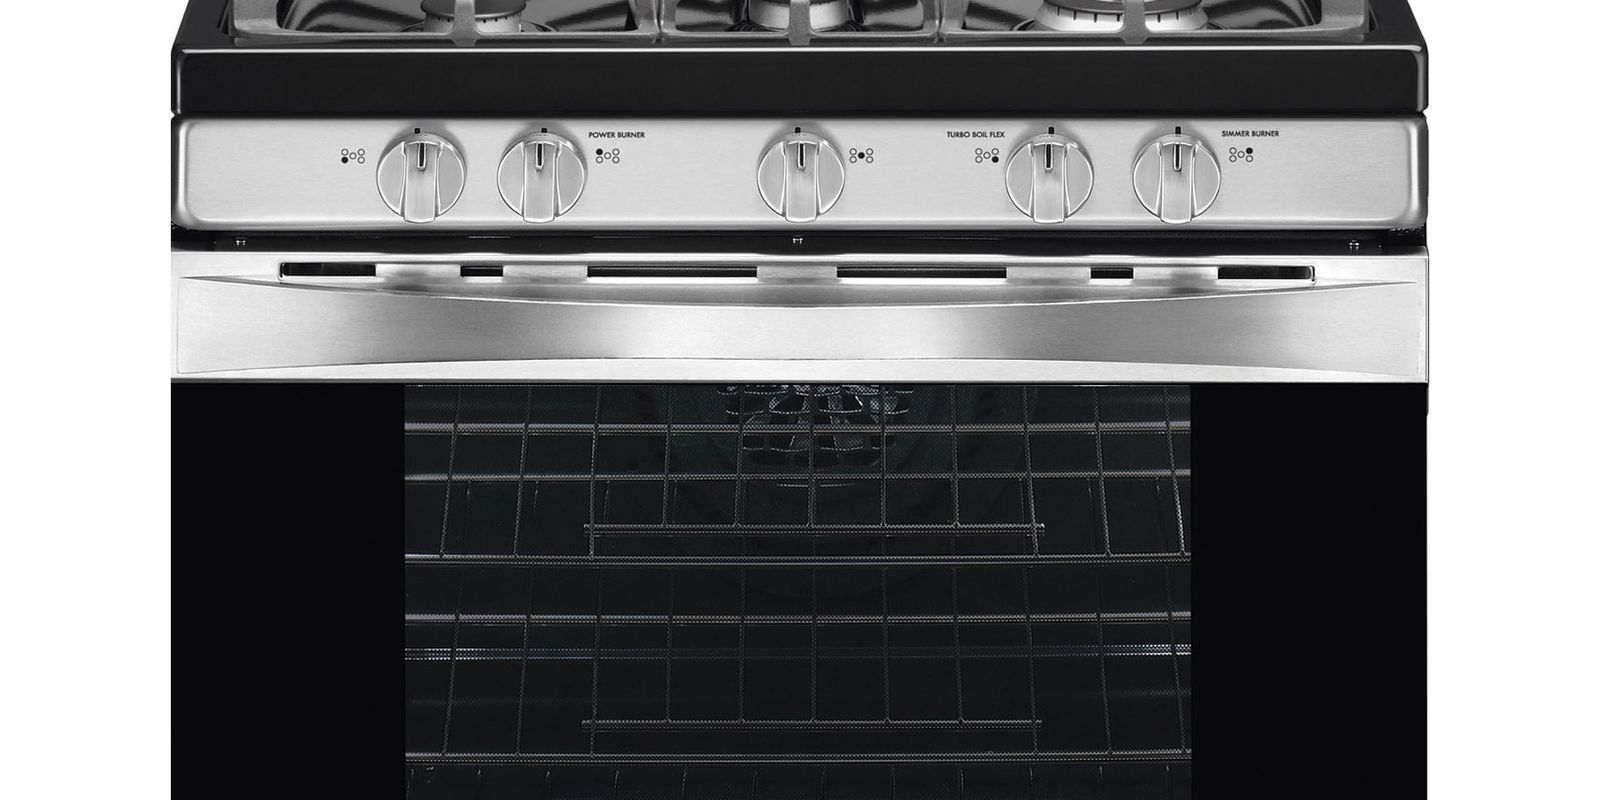 Lg double oven gas range reviews - Lg Double Oven Gas Range Reviews 52